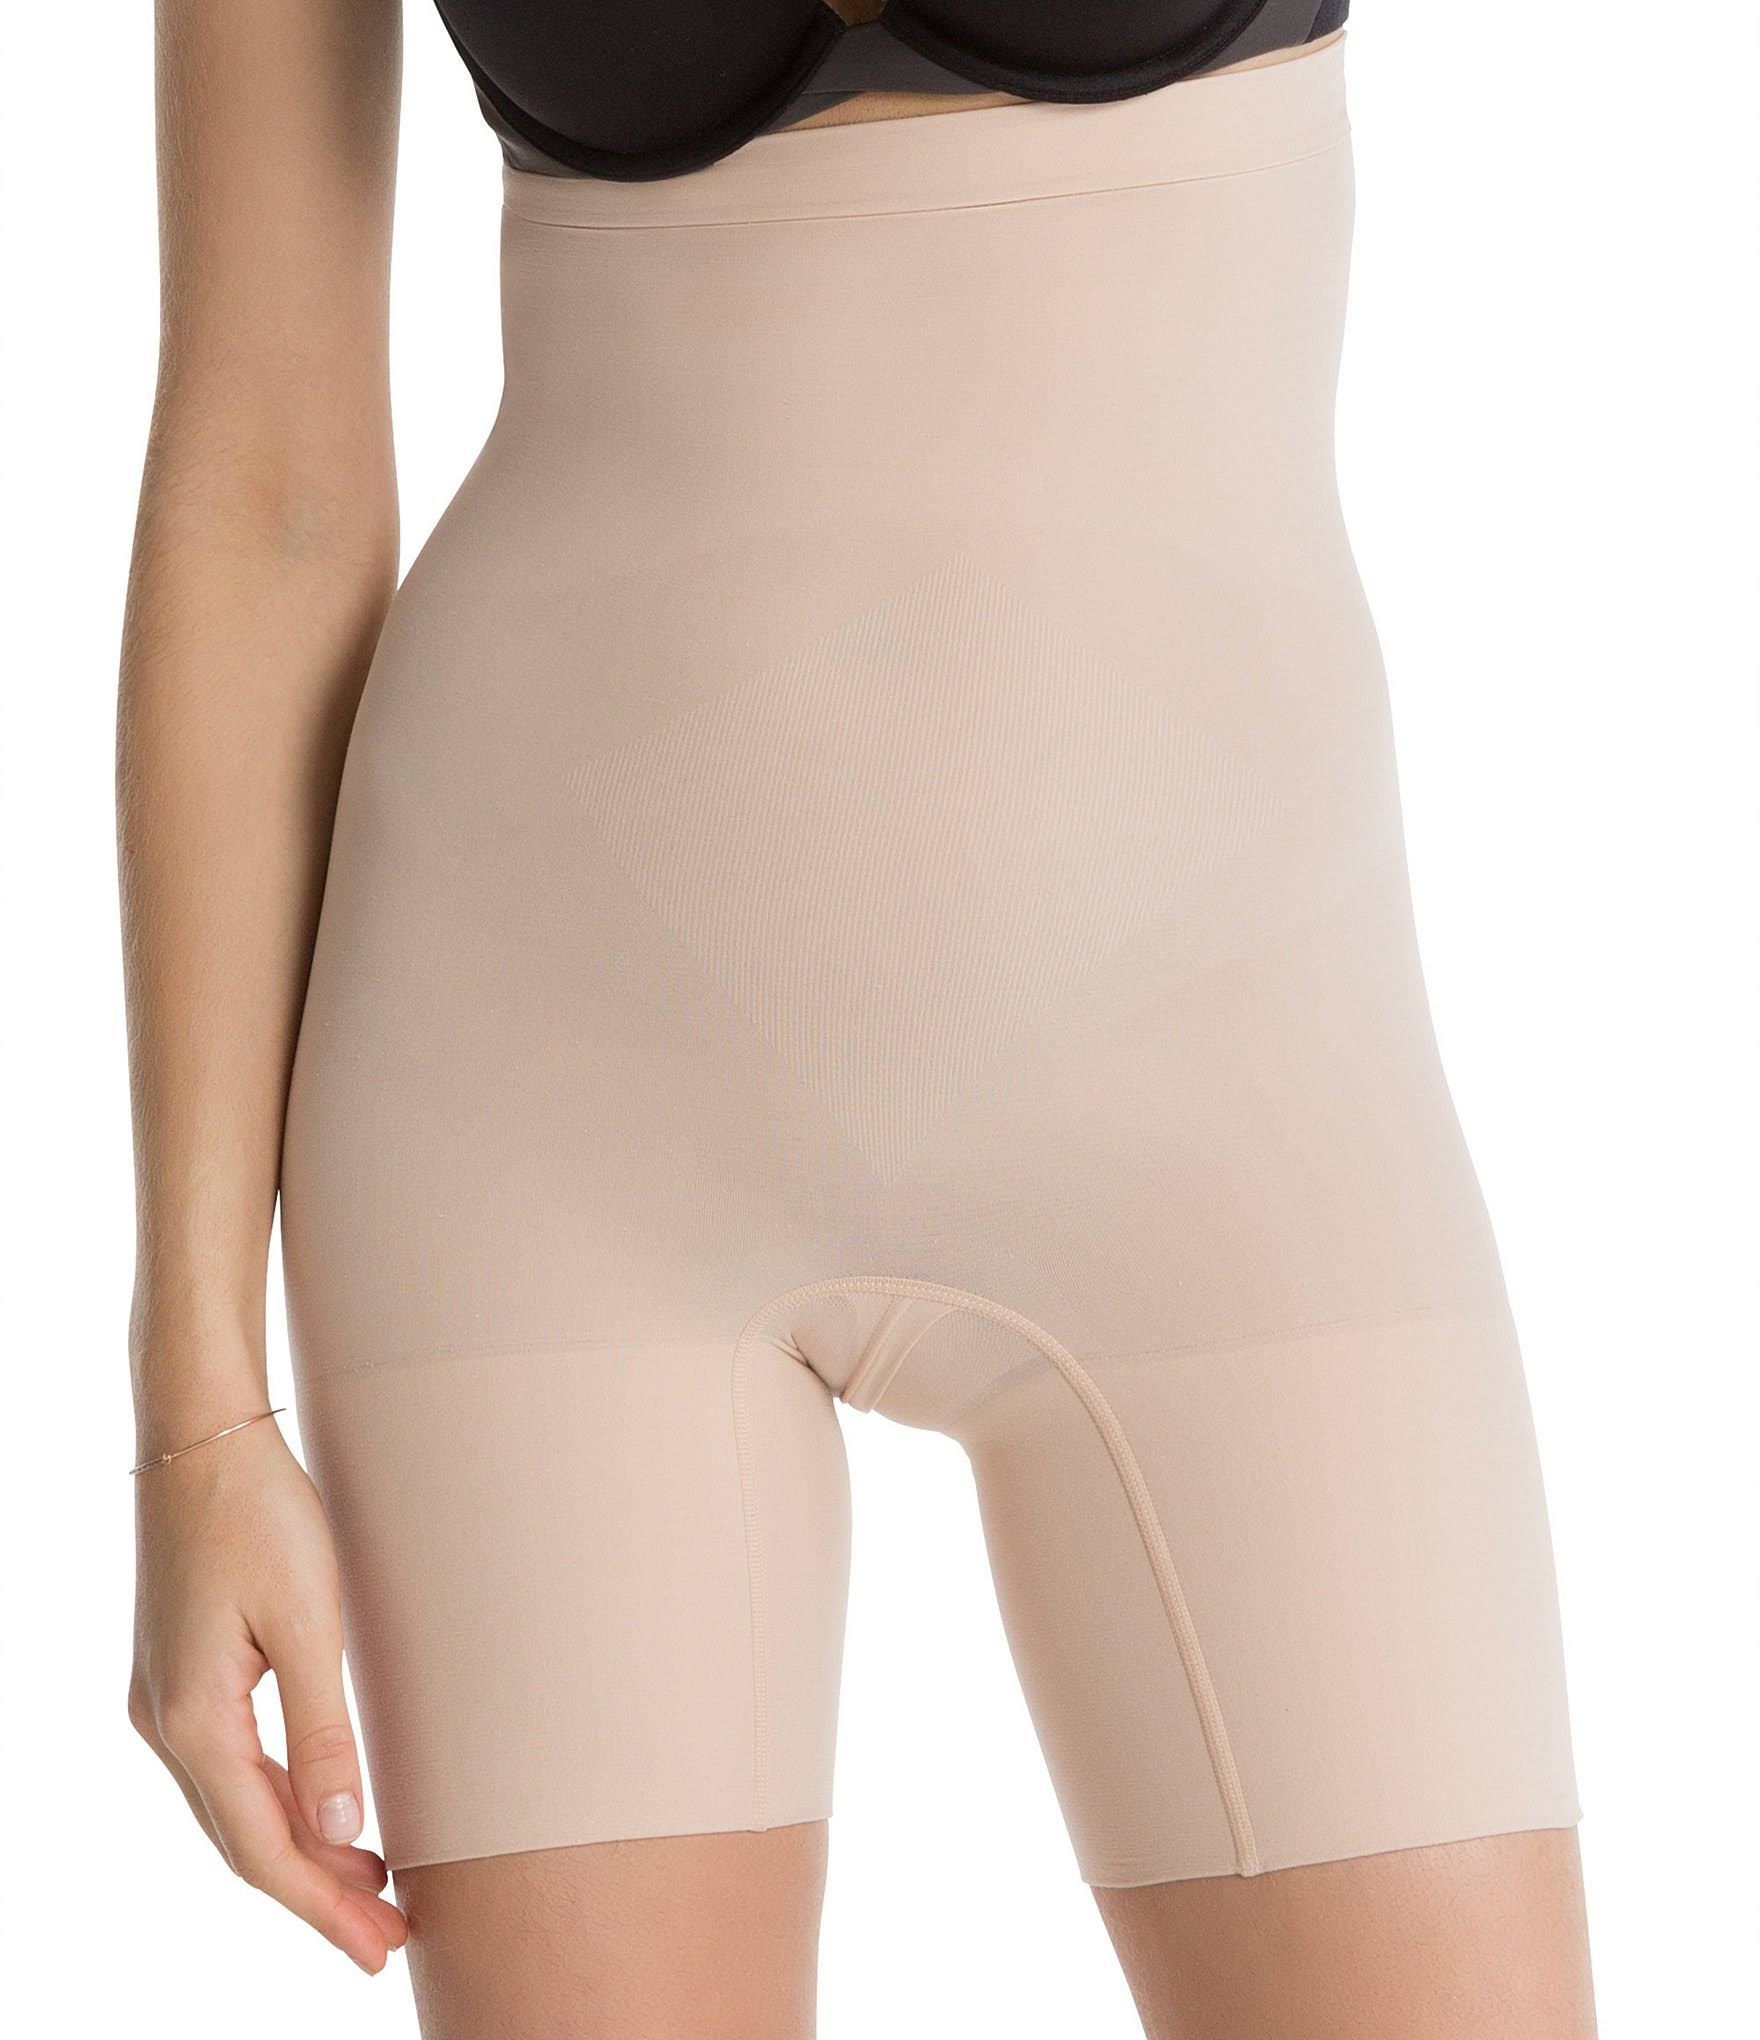 SPANX Power Series Higher Power Short - Soft Nude, 2X Plus